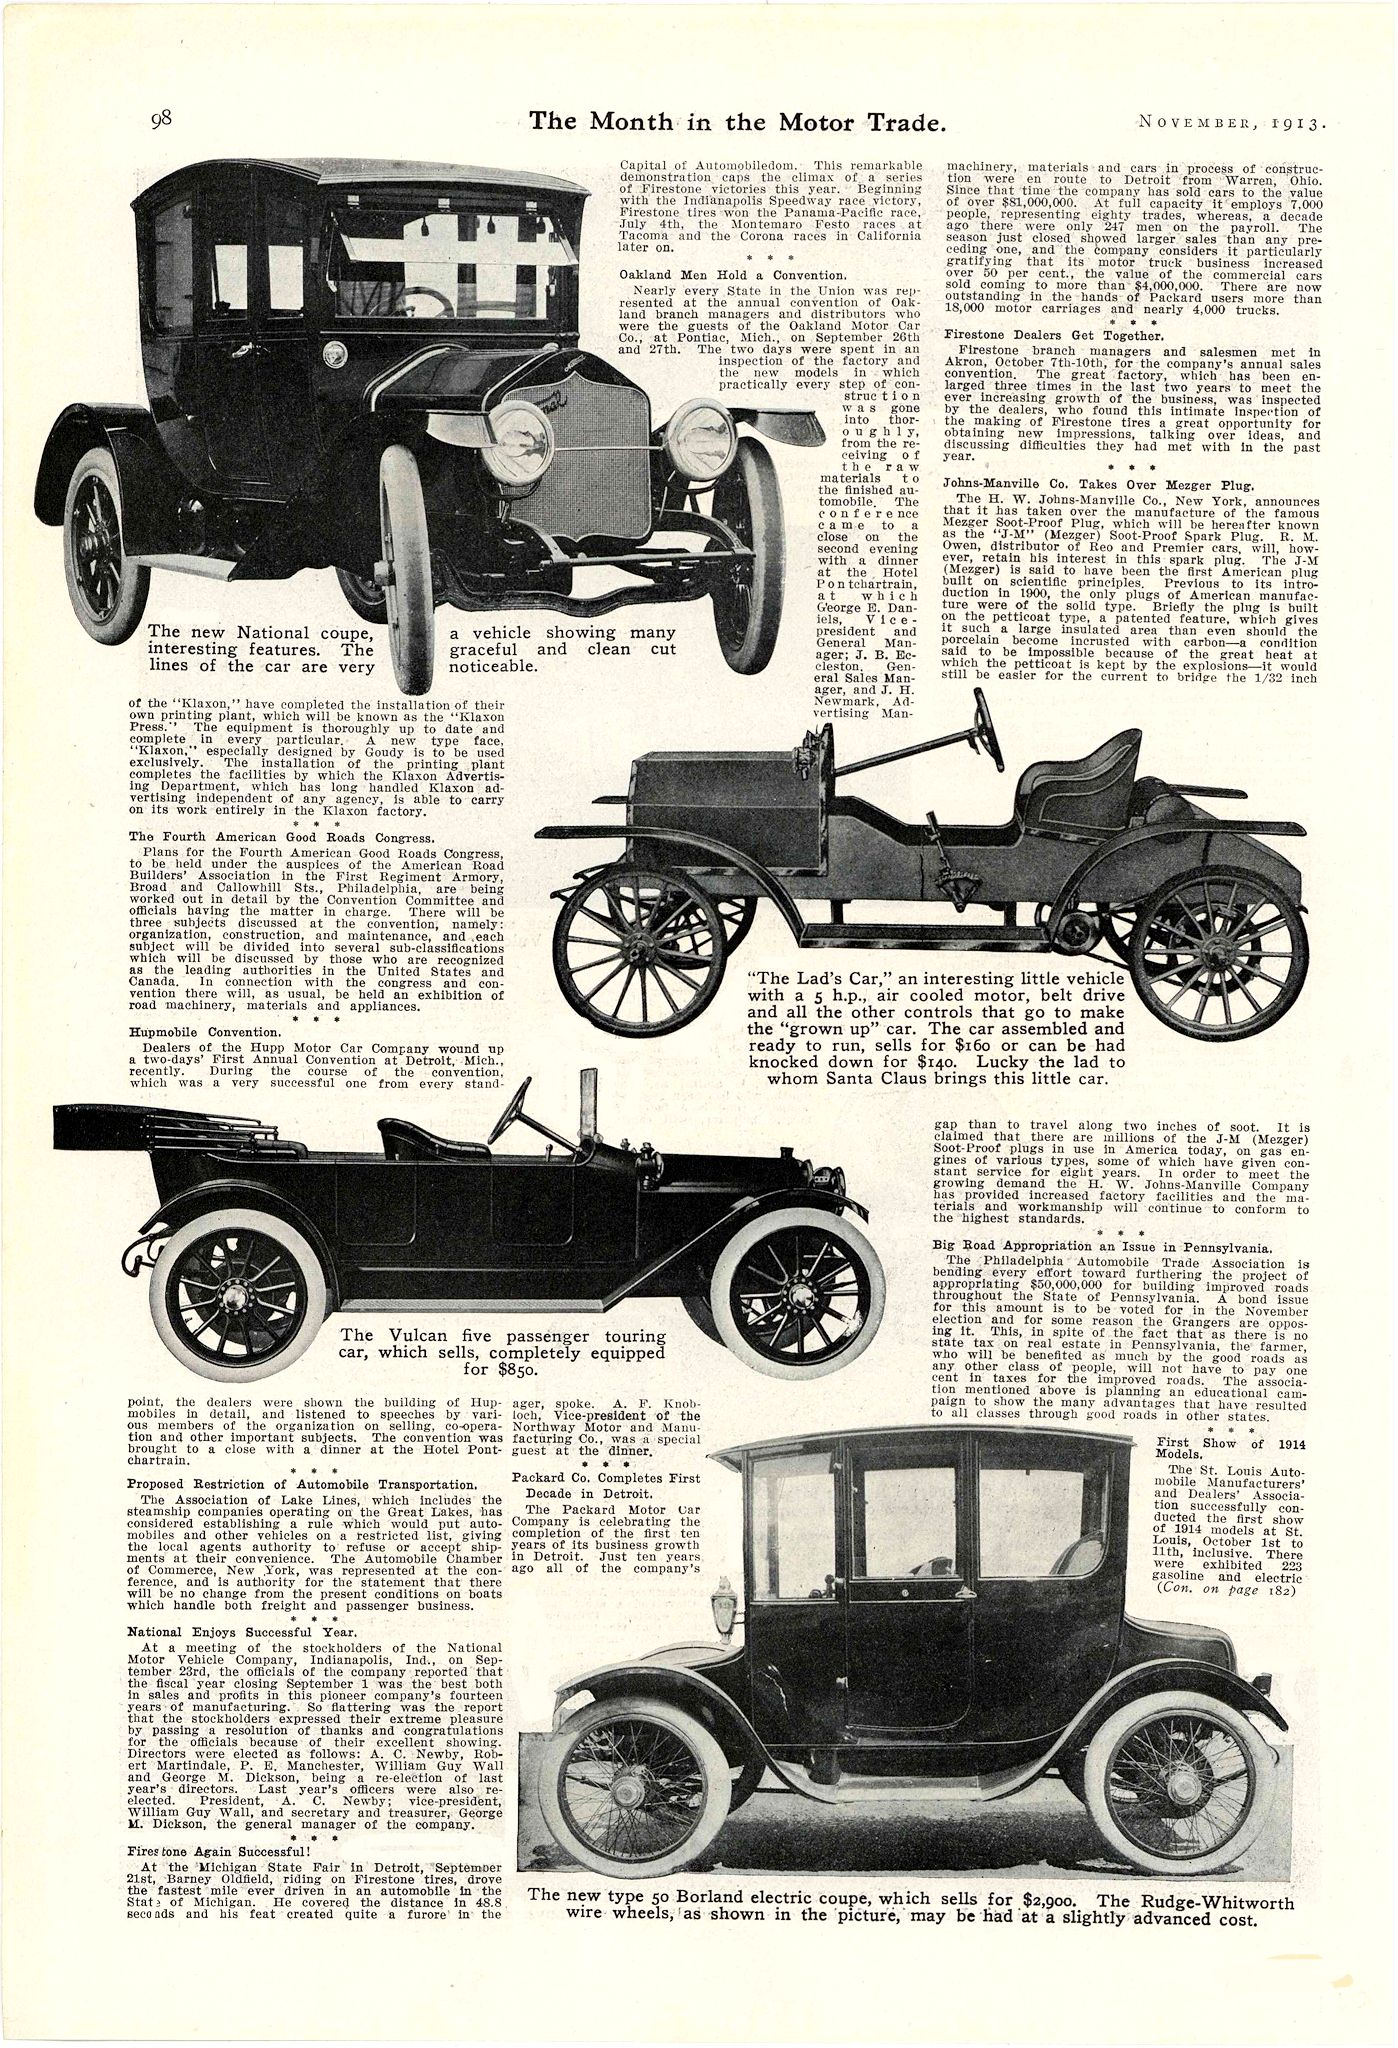 1913 11 1914 NATIONAL The new National Coupe National Enjoys Successful Year. National Motor Vehicle Company Indianapolis, IND The Month in the Motor Trade November 1913 9.25″x13.5″ page 98